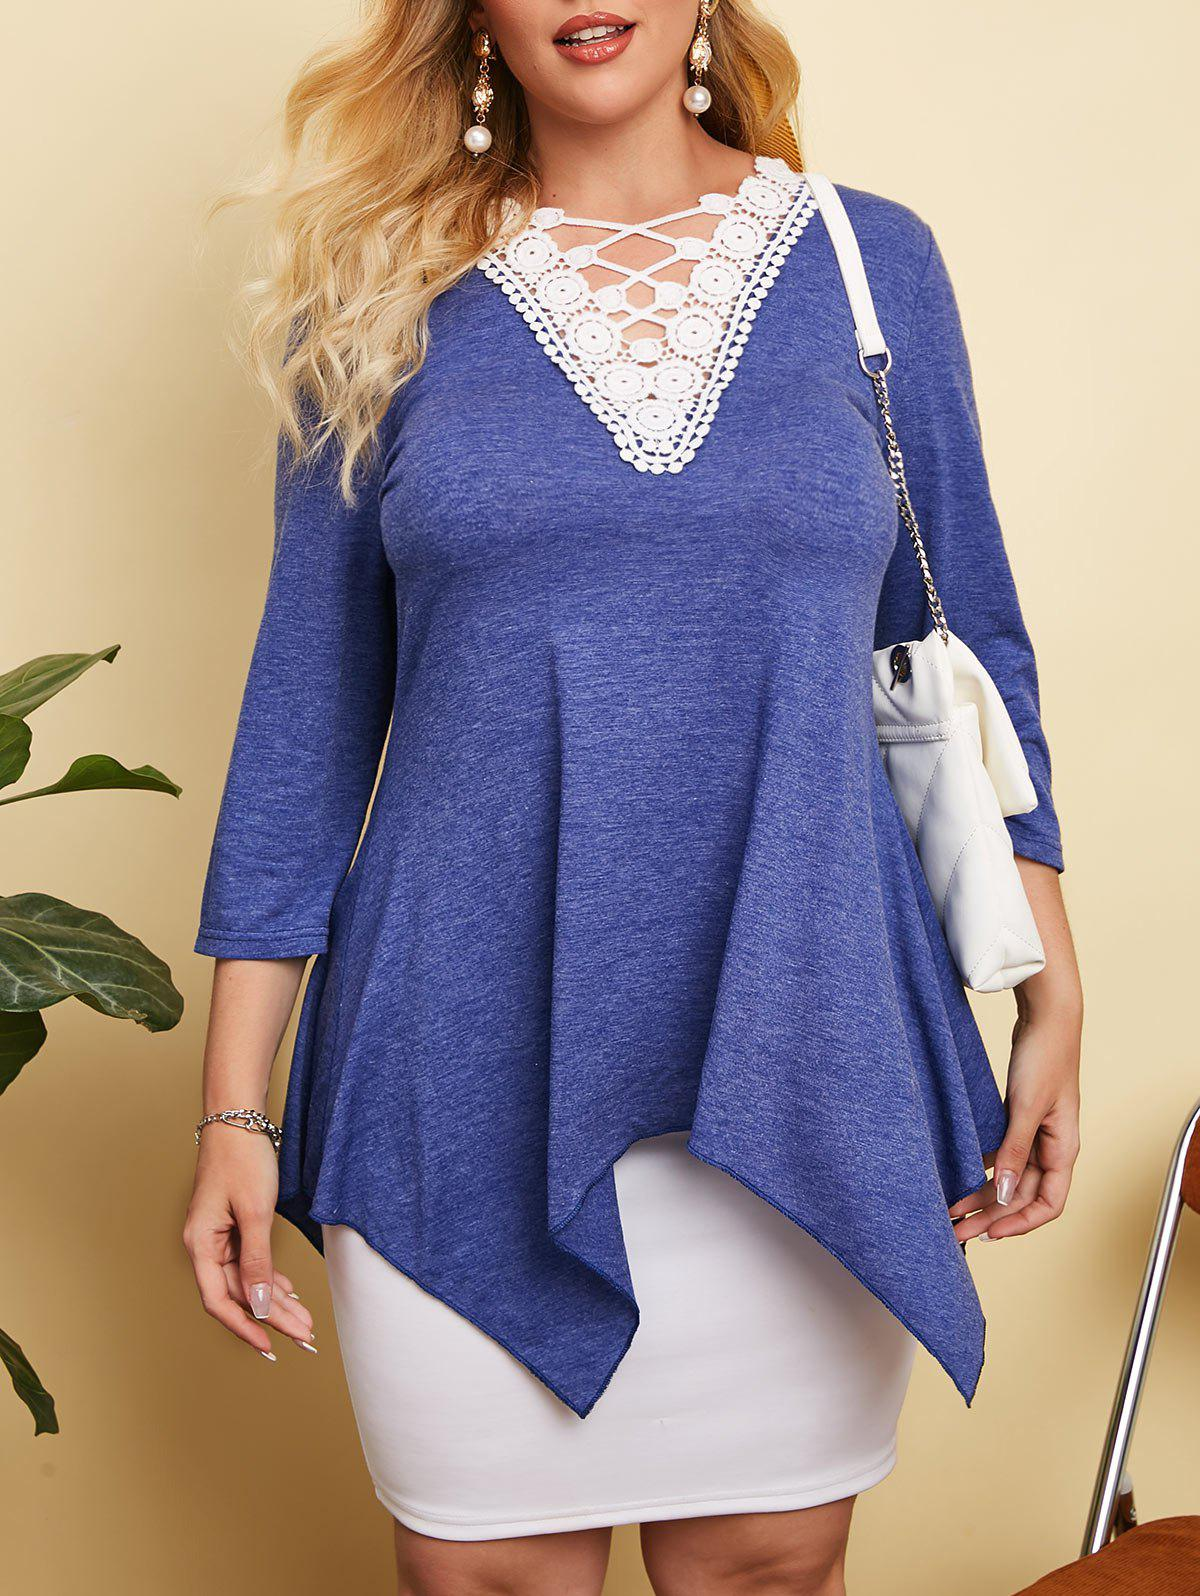 Crochet Lace Panel Heathered Plus Size Top - BLUE 2X